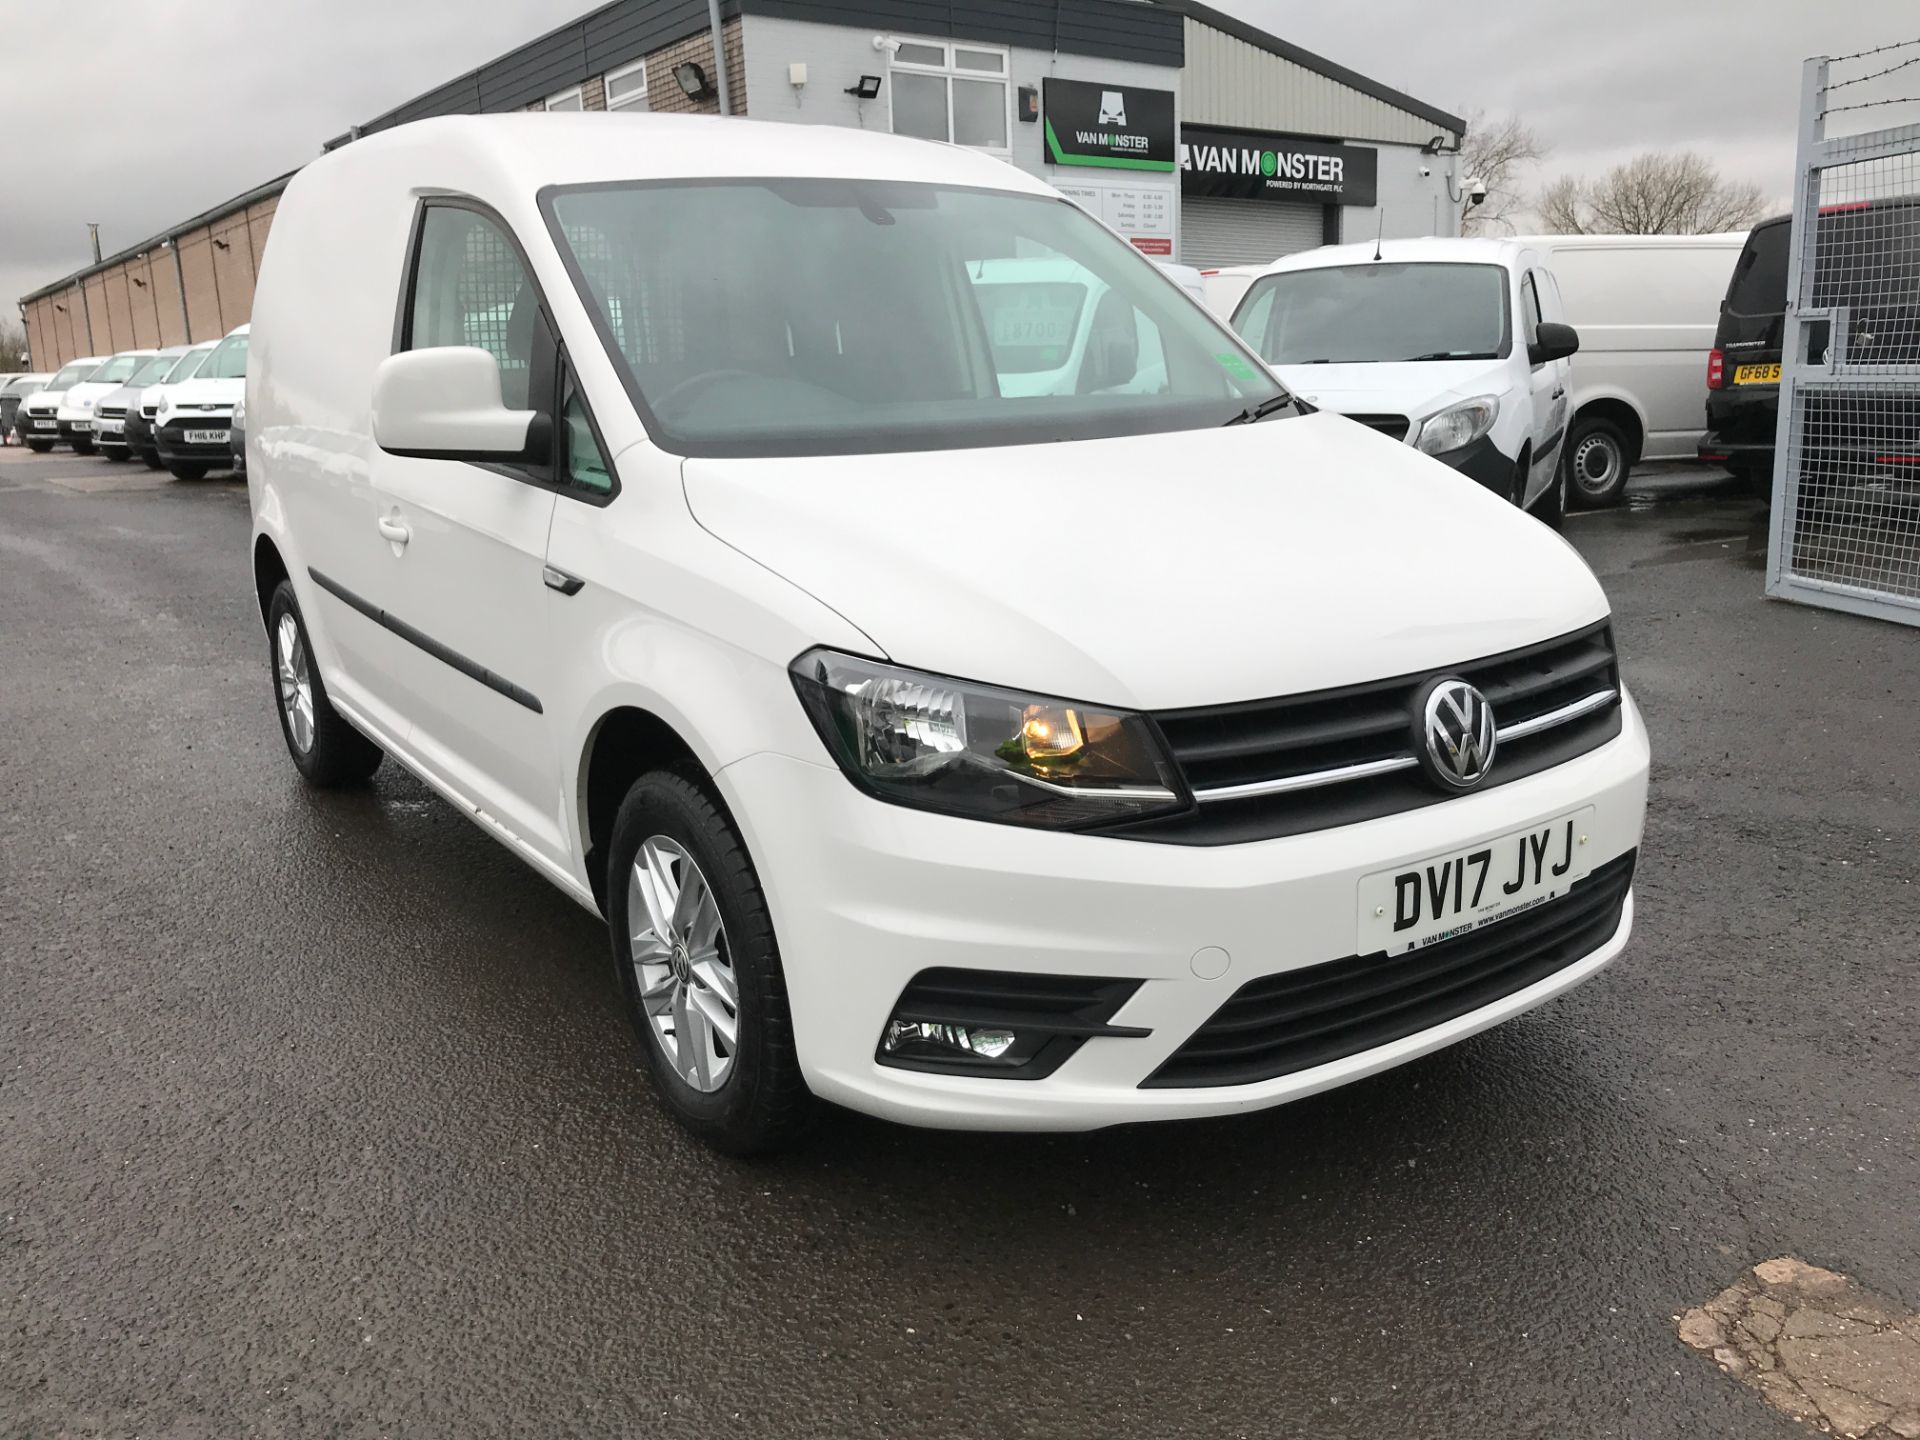 2017 Volkswagen Caddy 2.0TDI BLUEMOTION TECH 102PS HIGHLINE EURO 6 (DV17JYJ)